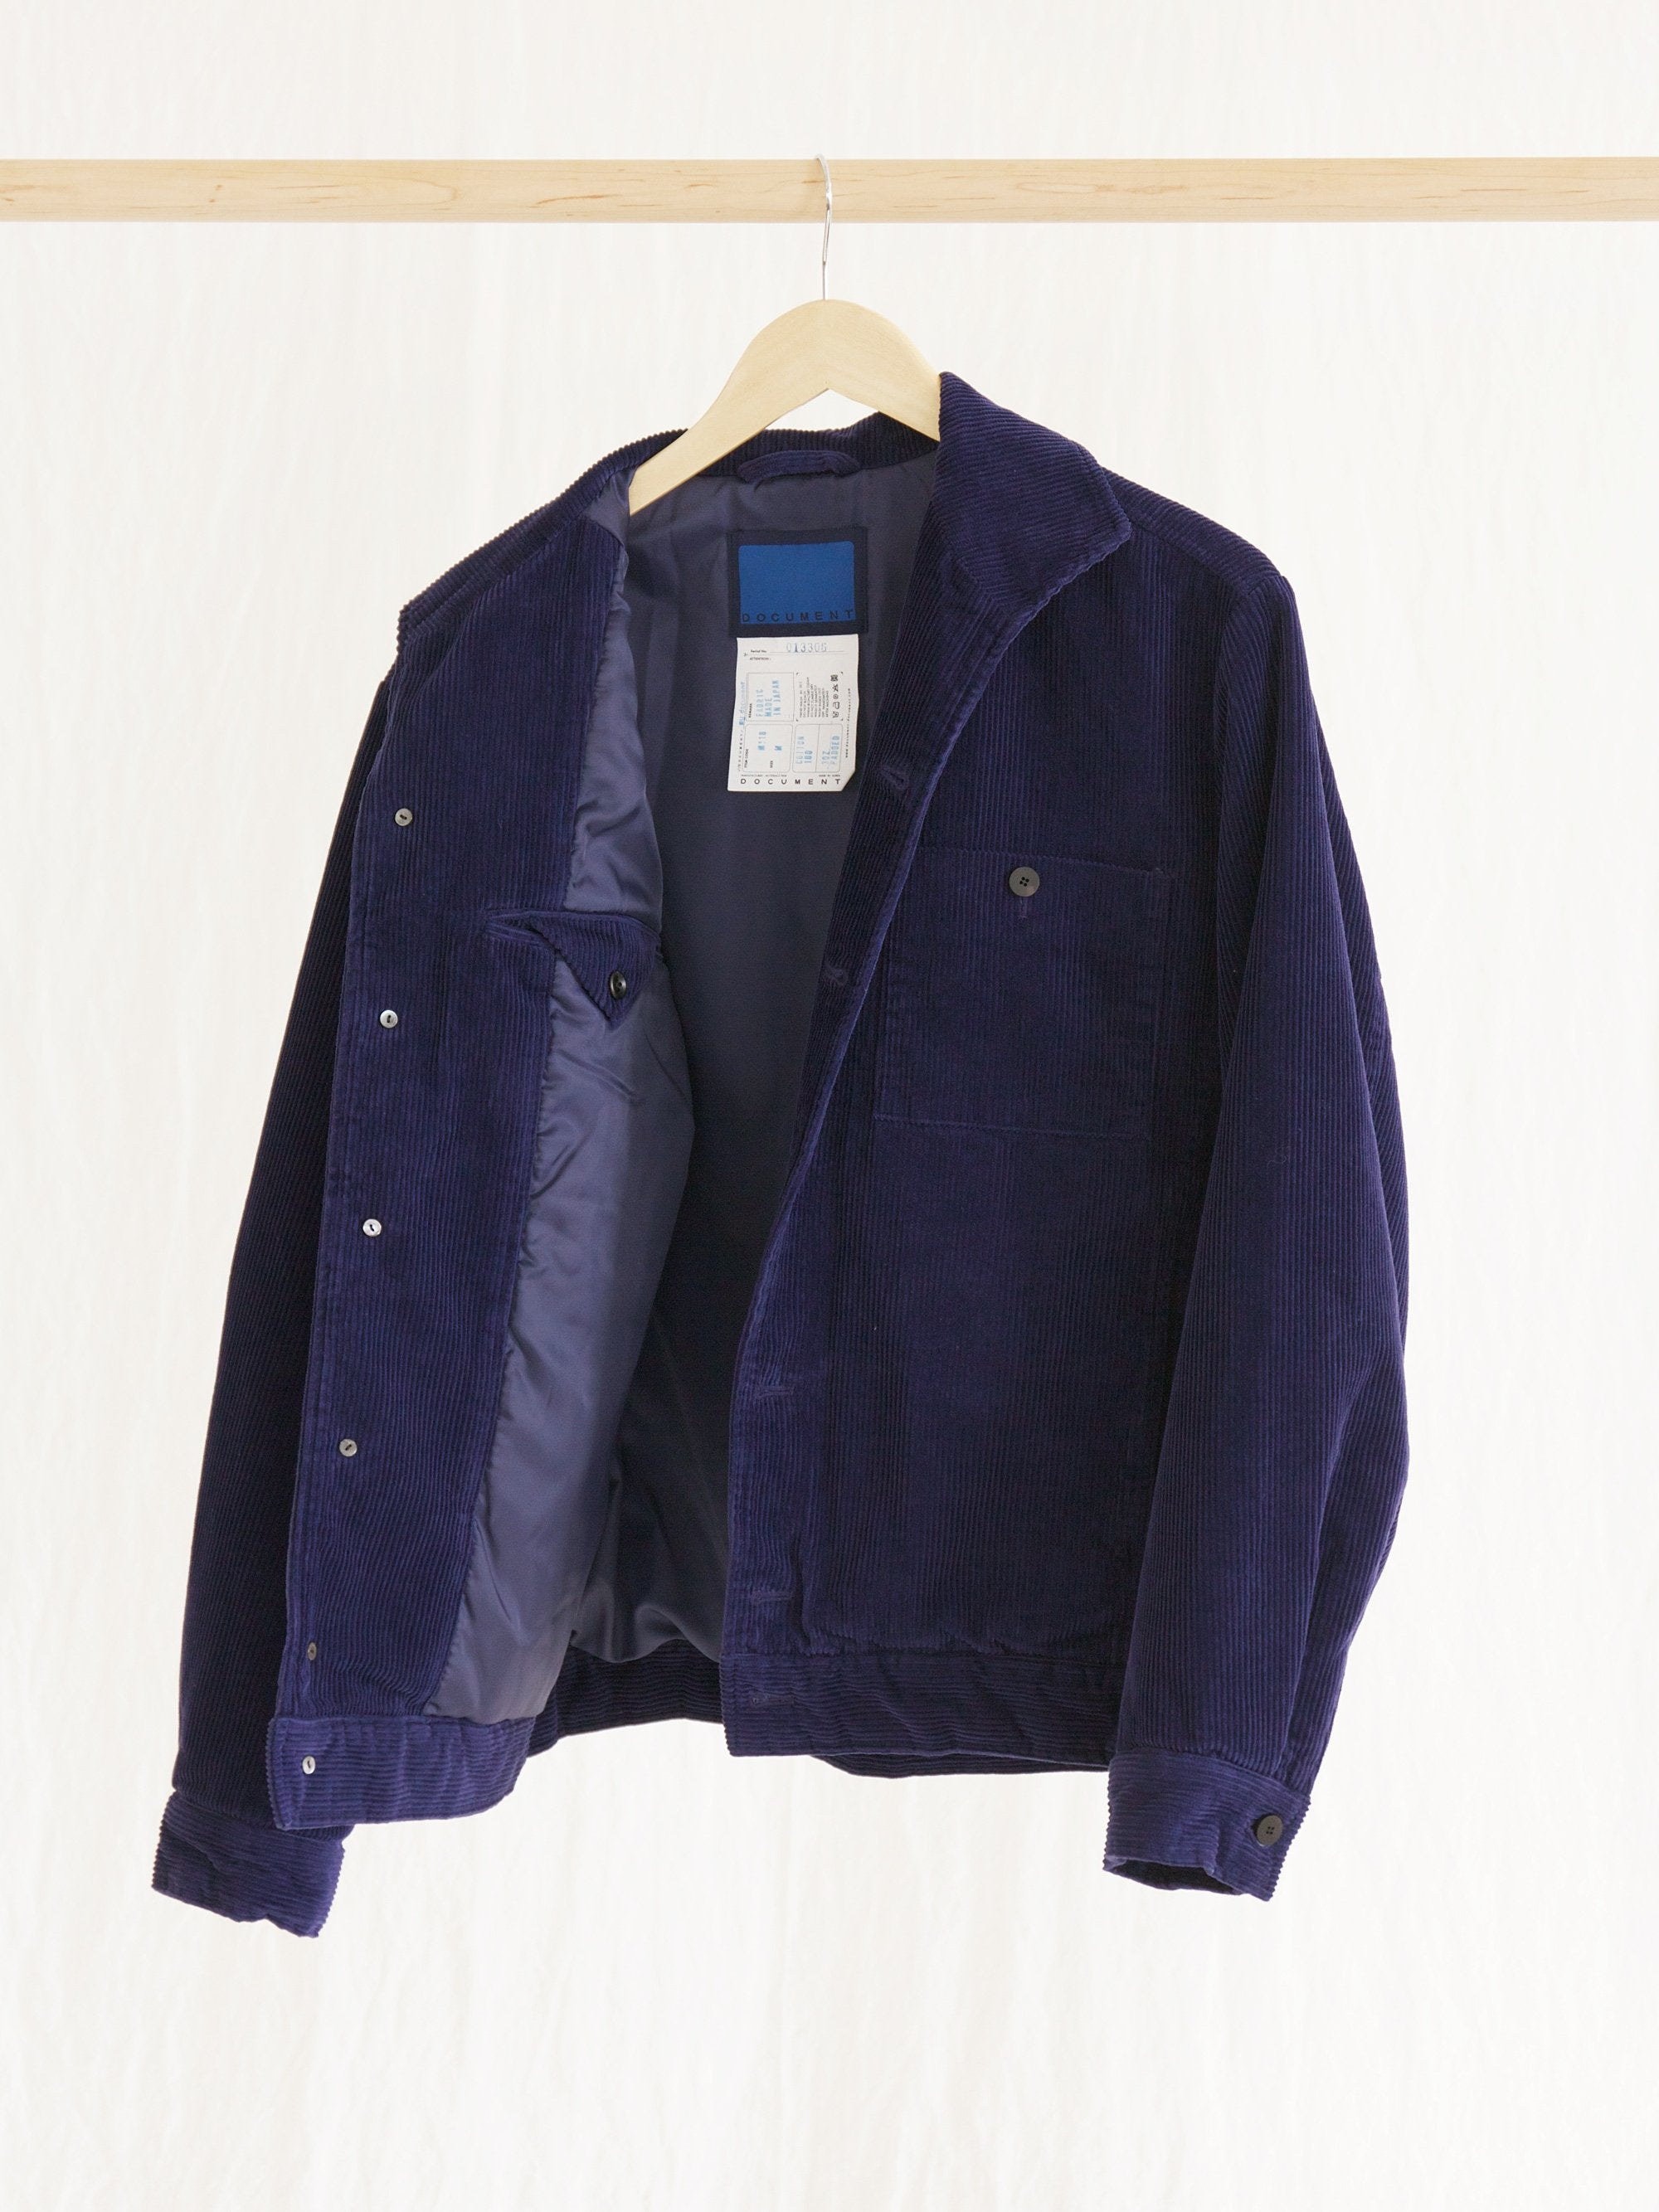 Namu Shop - Document Padded Corduroy Jacket (Special Restock)